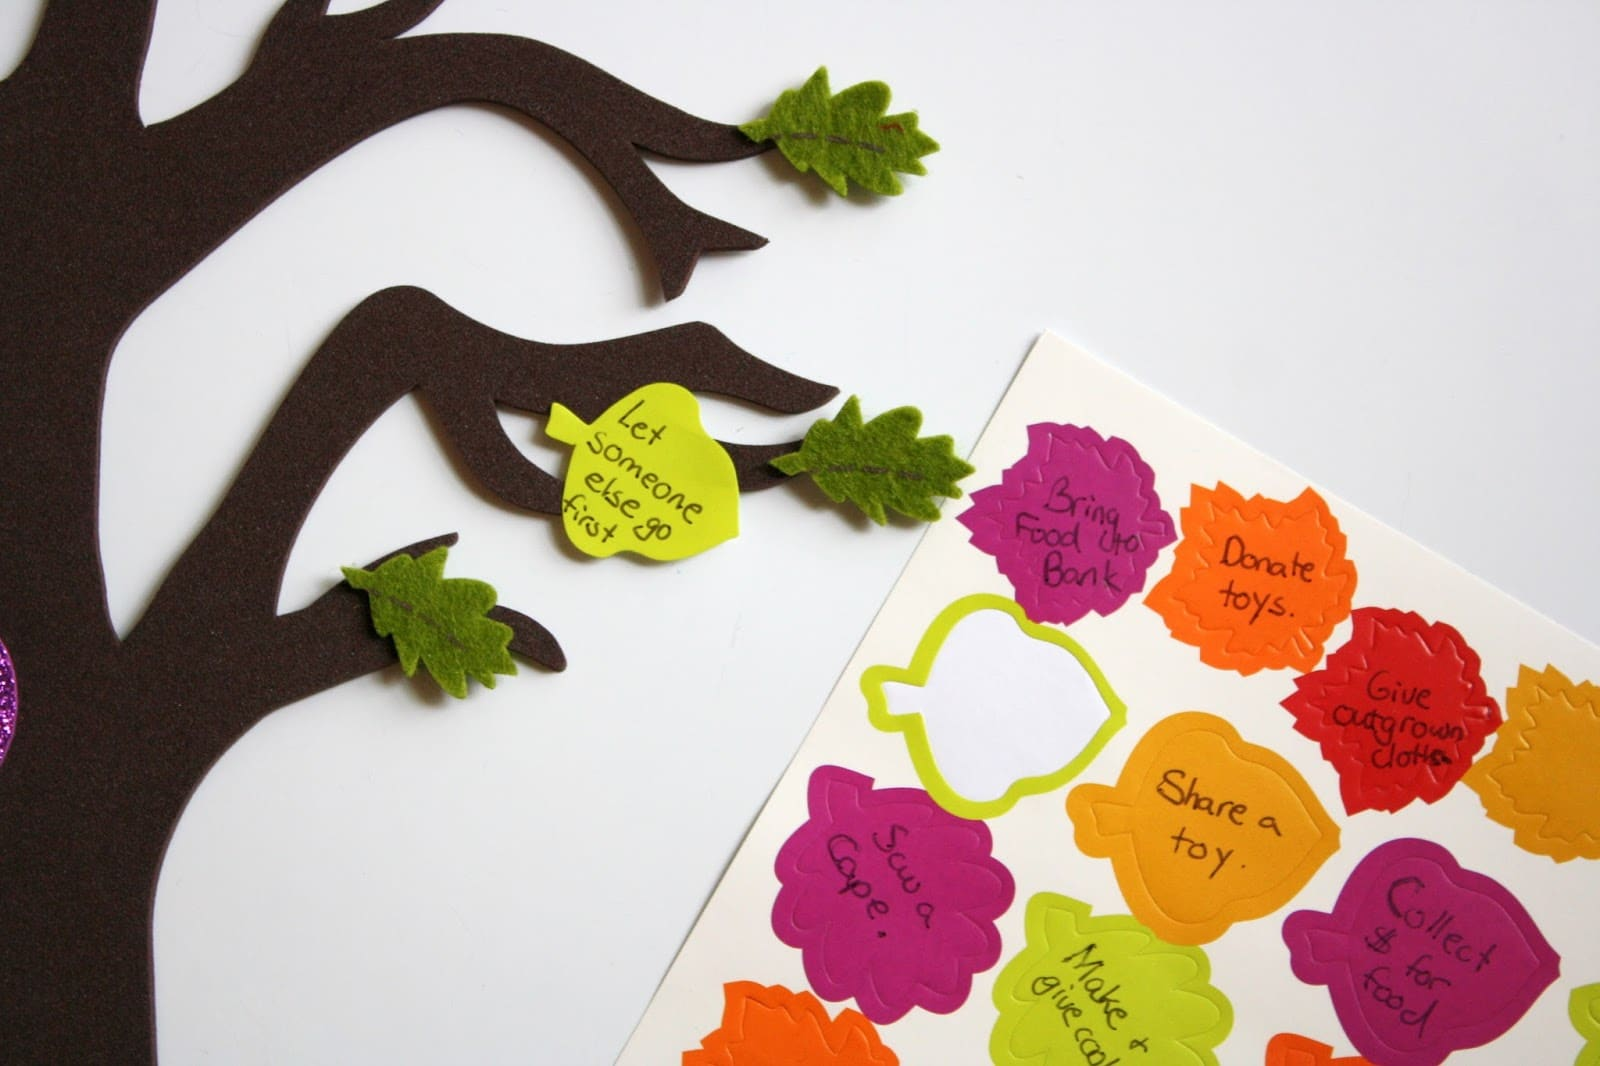 Kindness crafts for preschoolers - Organizing And Celebrating Kindness Activities For Young Children